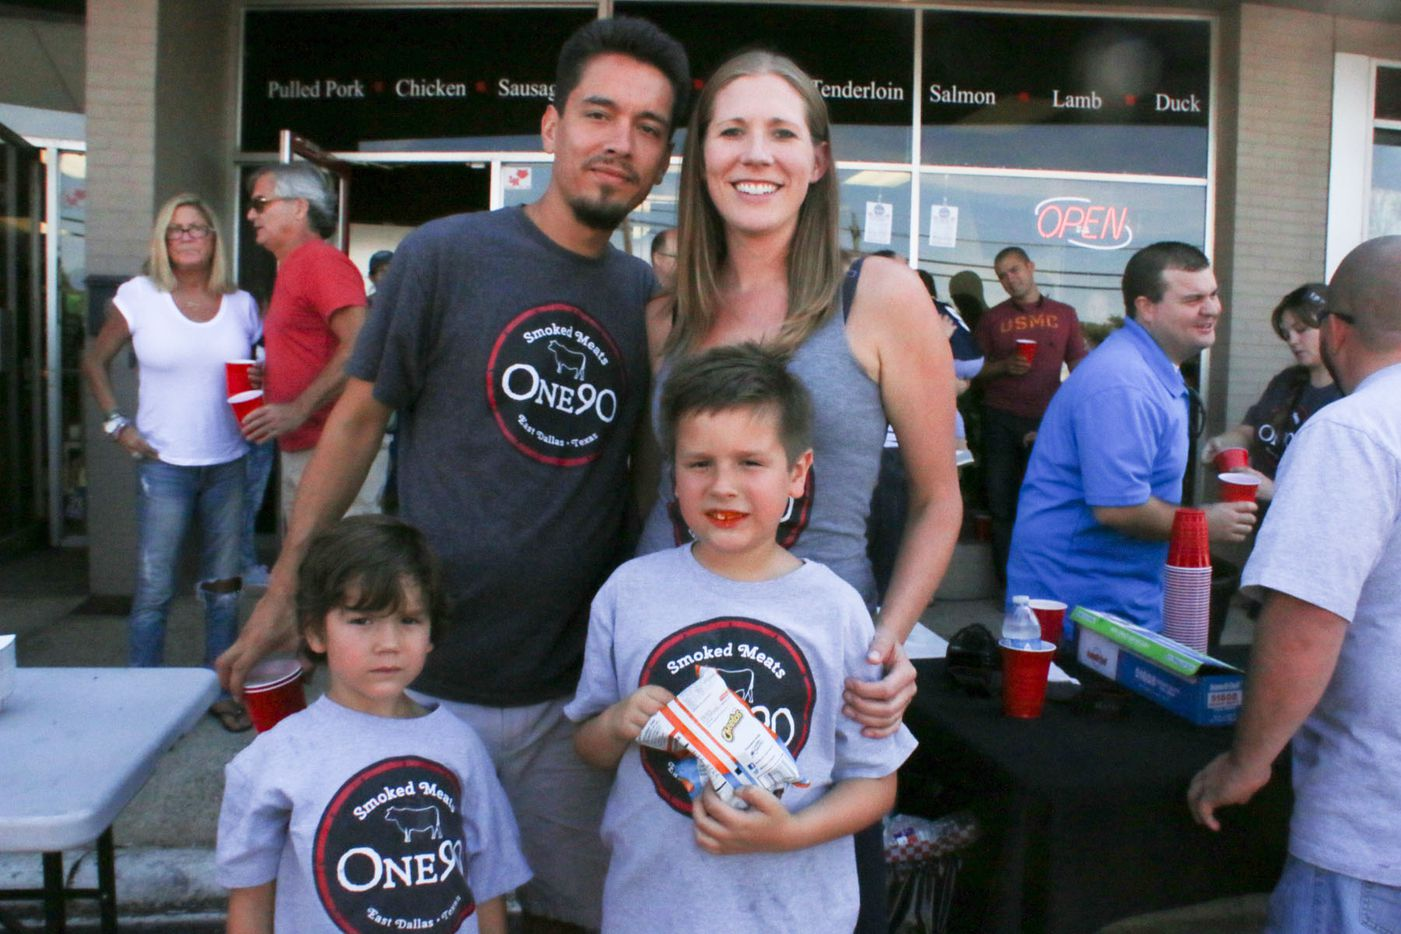 One90 Smoked Meats had its grand opening in East Dallas on October 4, 2015. Owner Herman Guerra with his family.